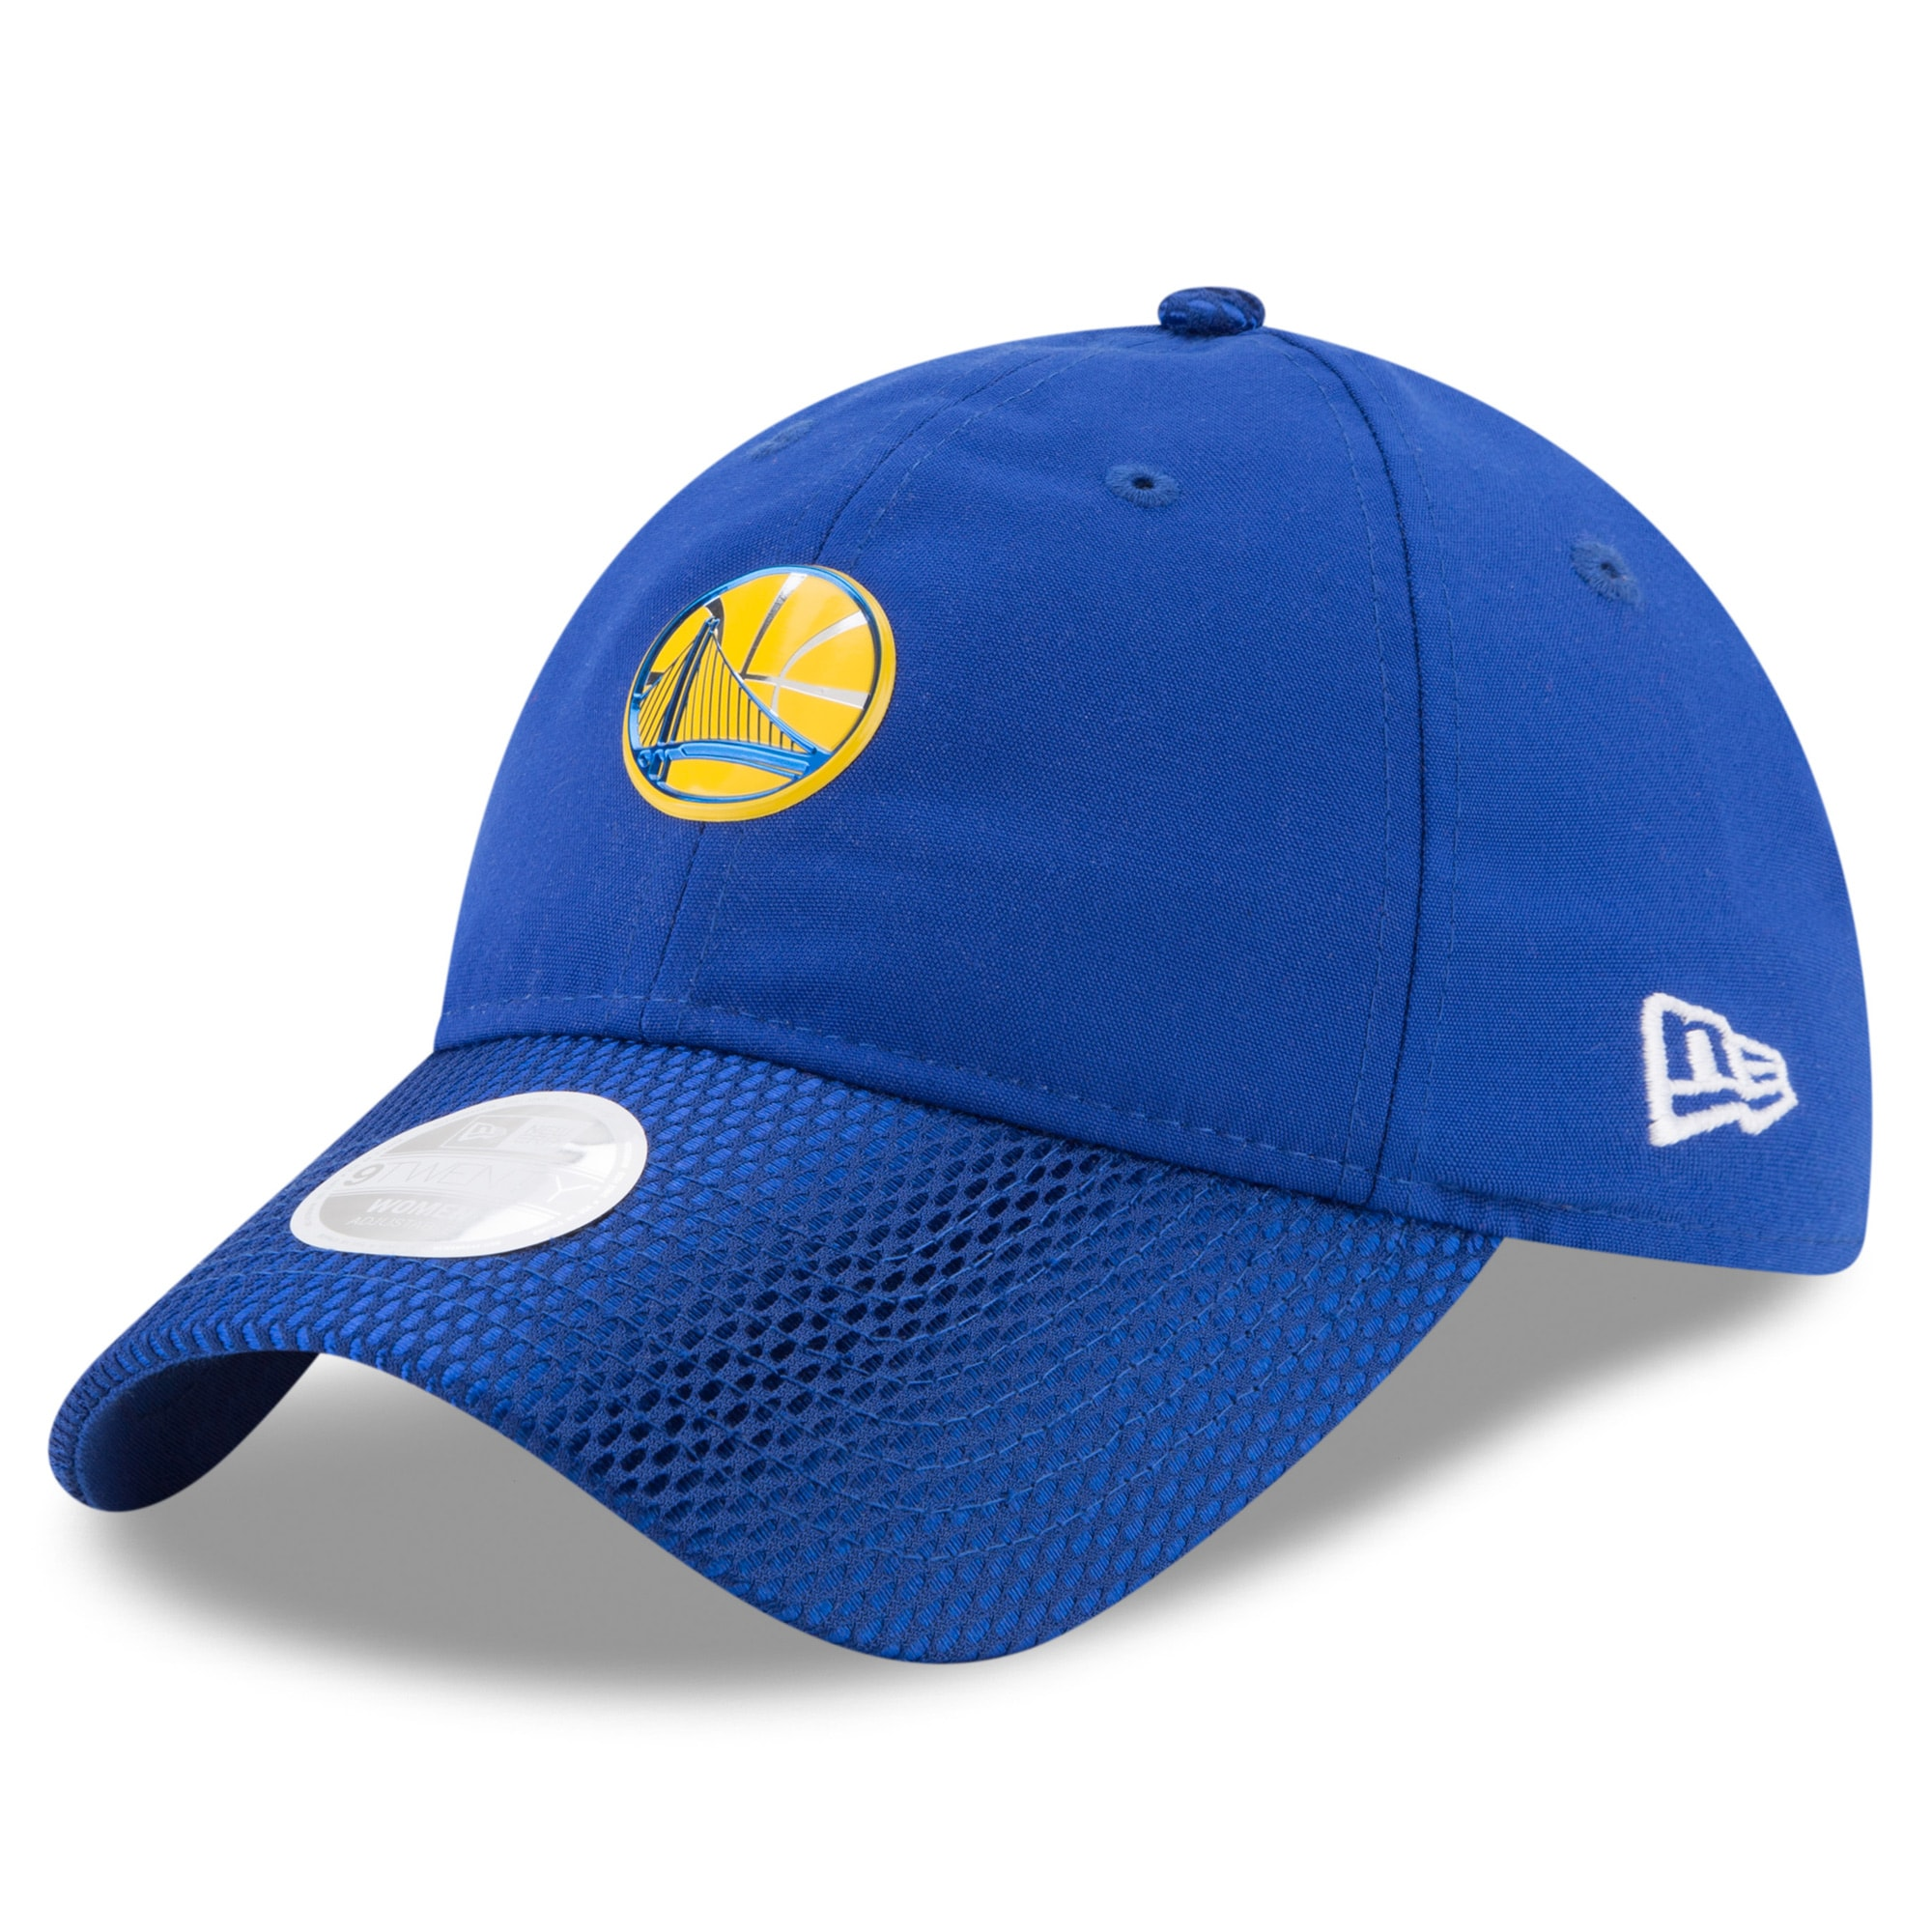 Golden State Warriors New Era Women's On-Court 9TWENTY Adjustable Hat - Royal